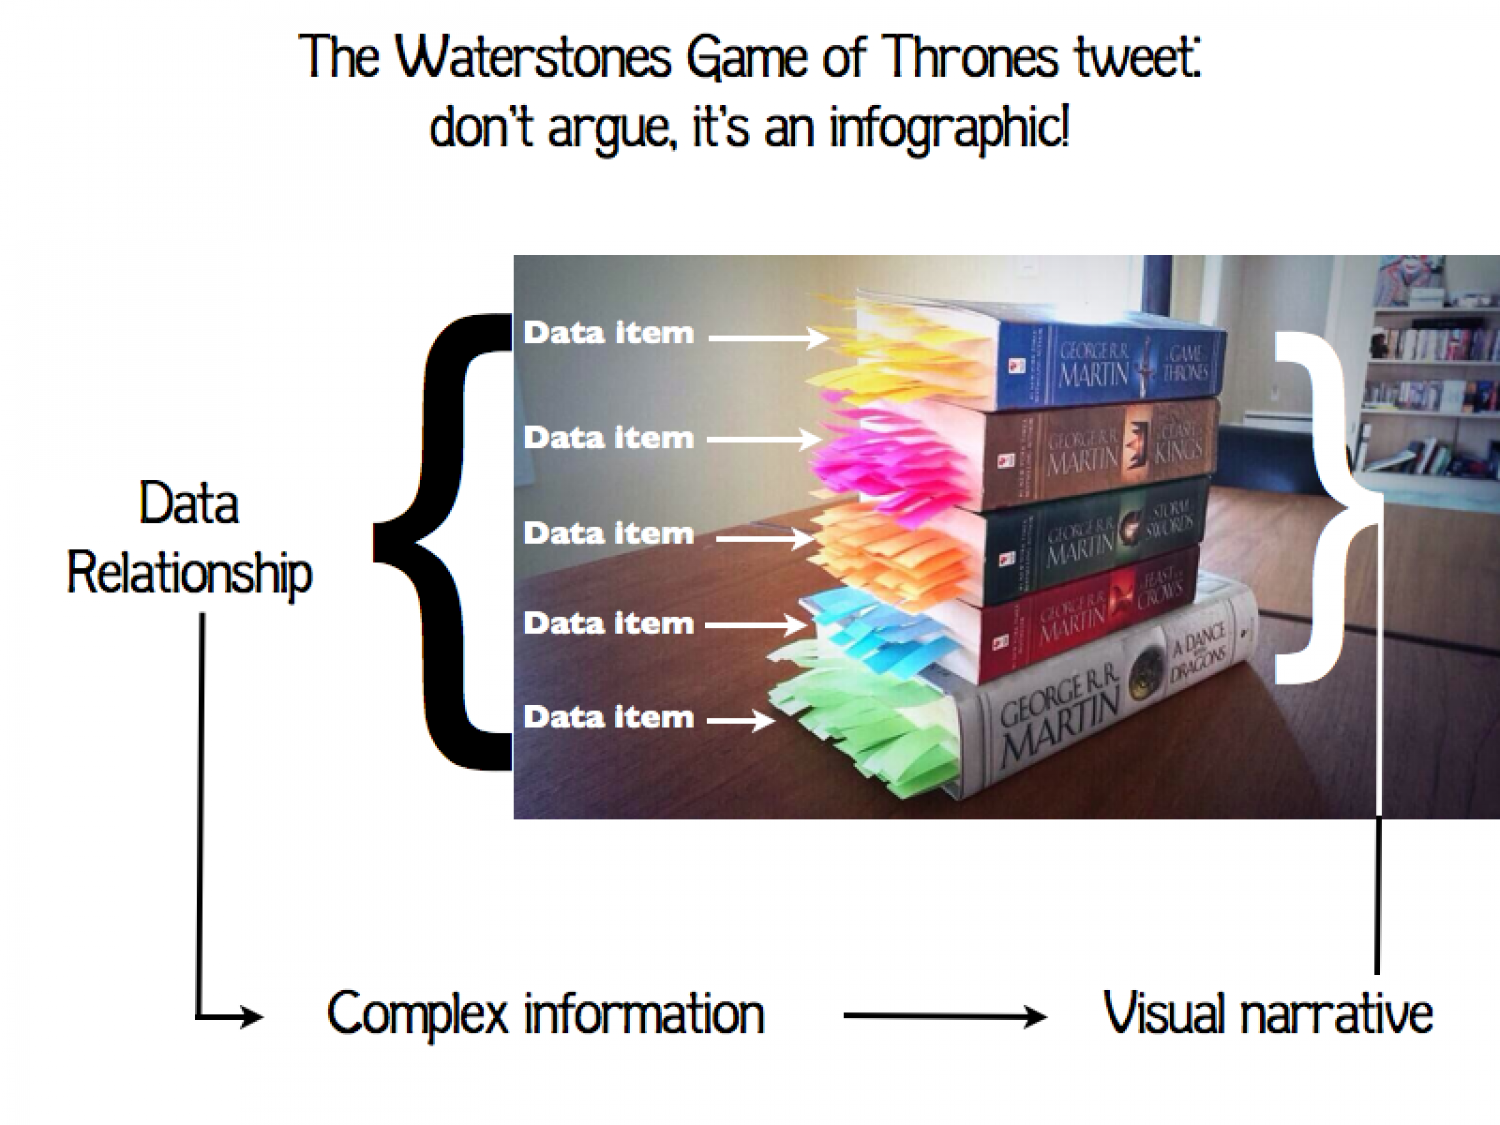 Game of Thrones - is this an infographic? Infographic